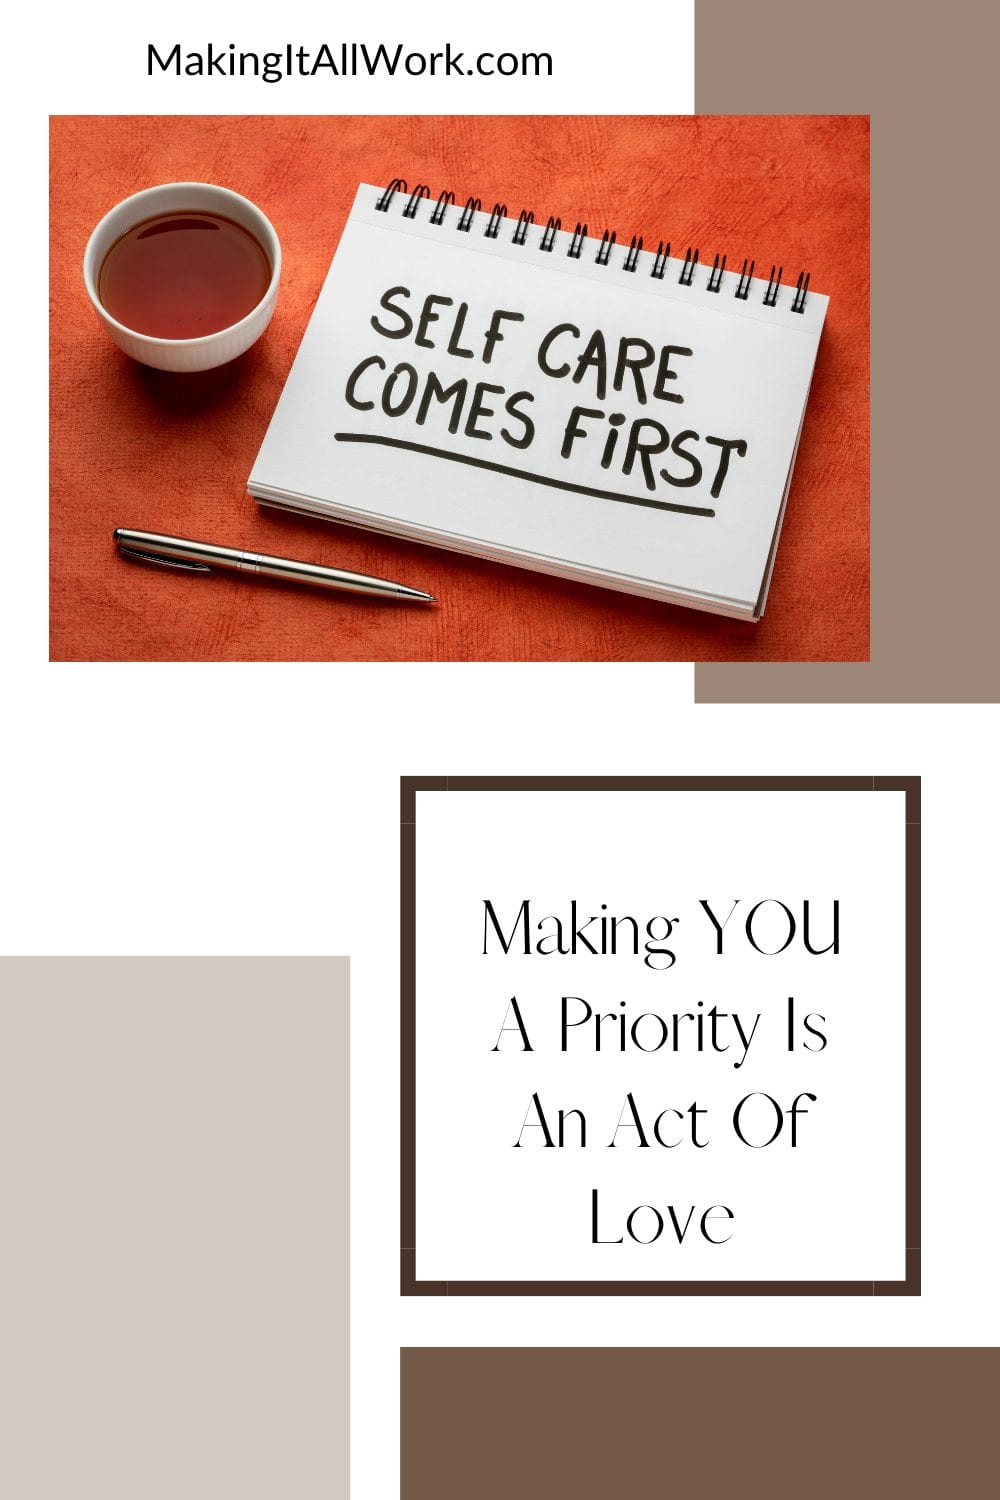 Making you a priority is an act of love. It's good for you and for others when you take the time to engage in self-care.